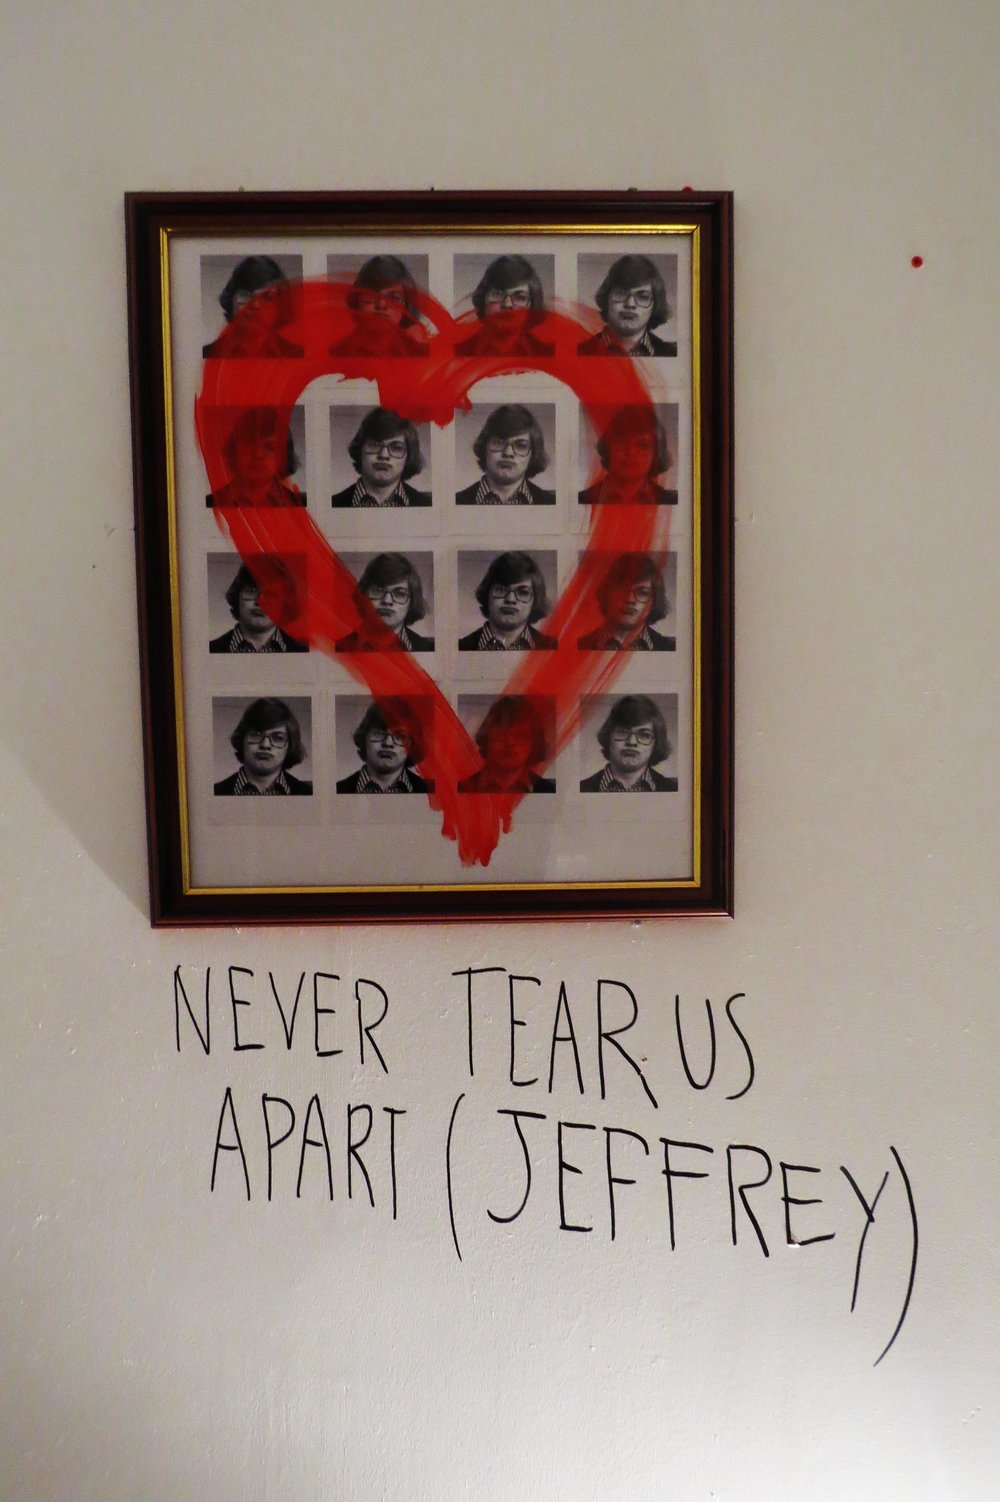 LOVE WILL NEVER TEAR US APART (JEFREY)